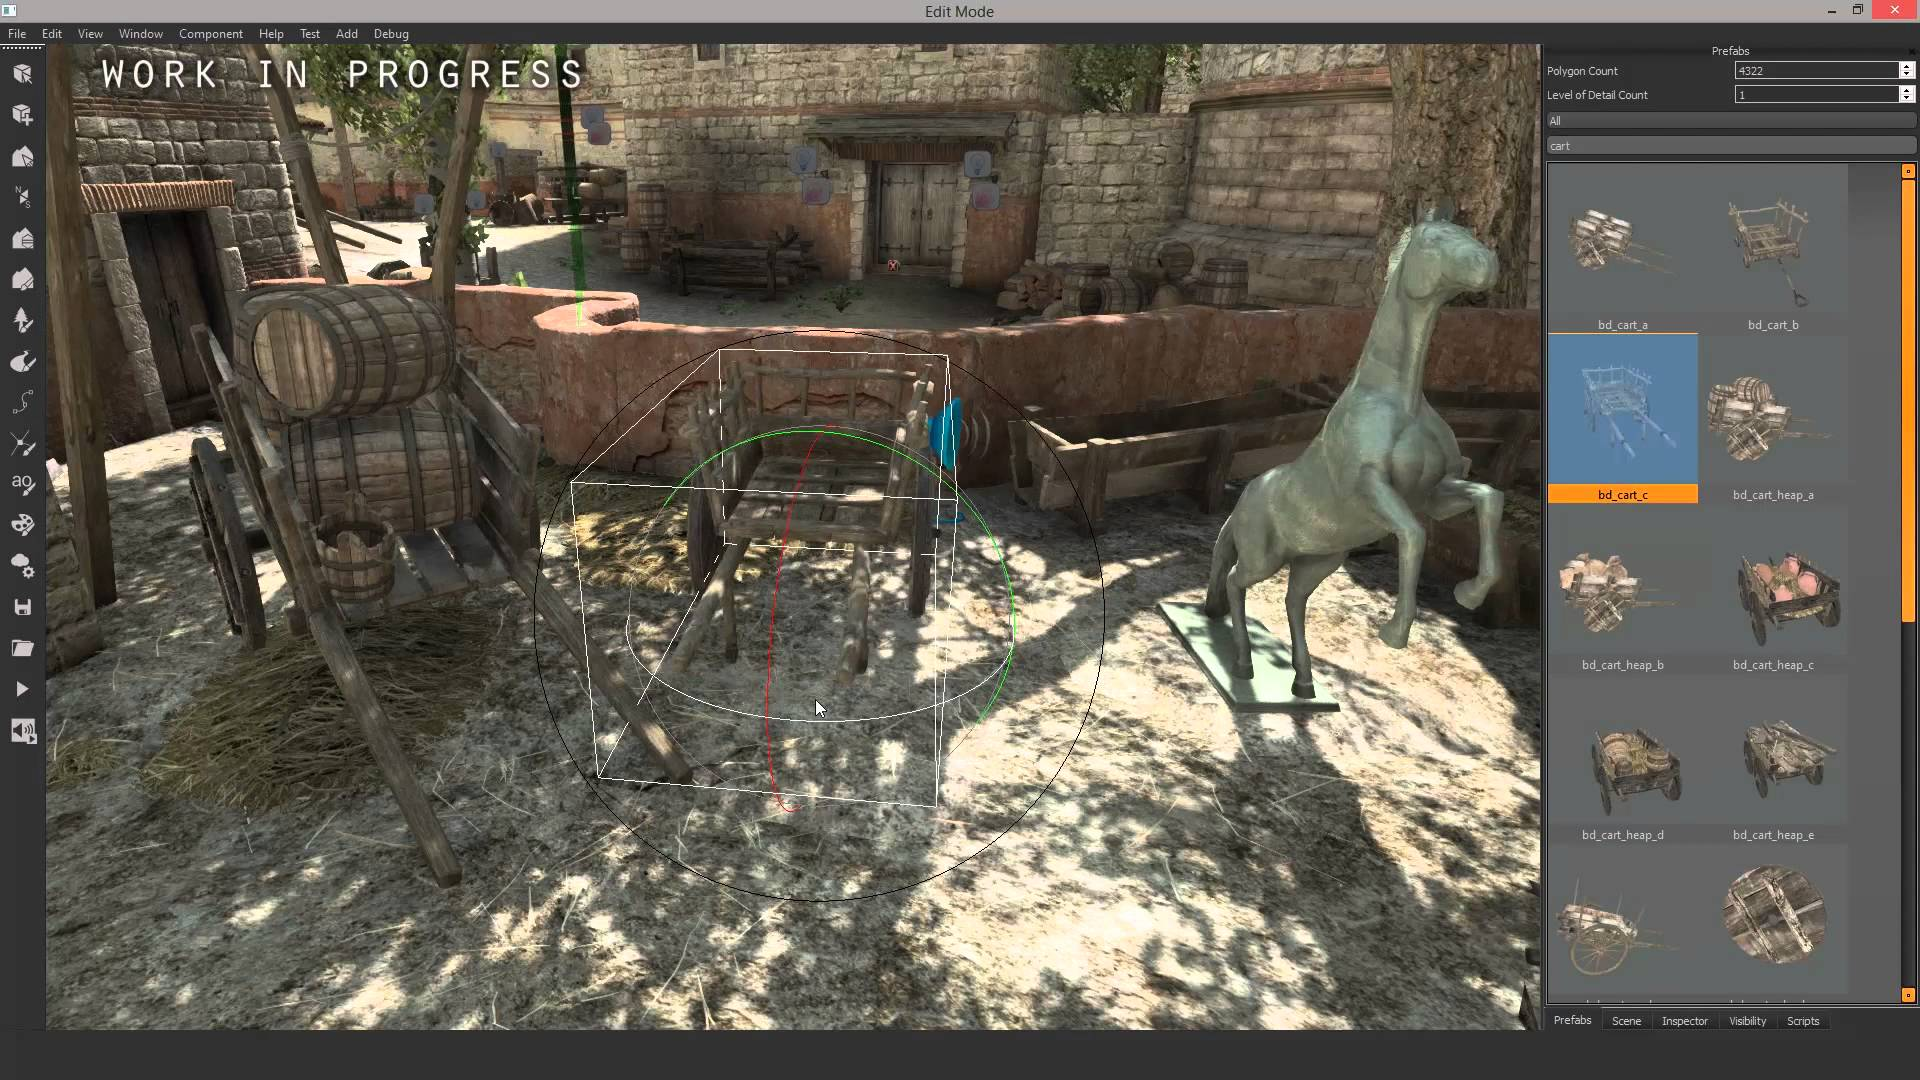 Most Viewed Mount Blade Ii Bannerlord Wallpapers 4k Wallpapers